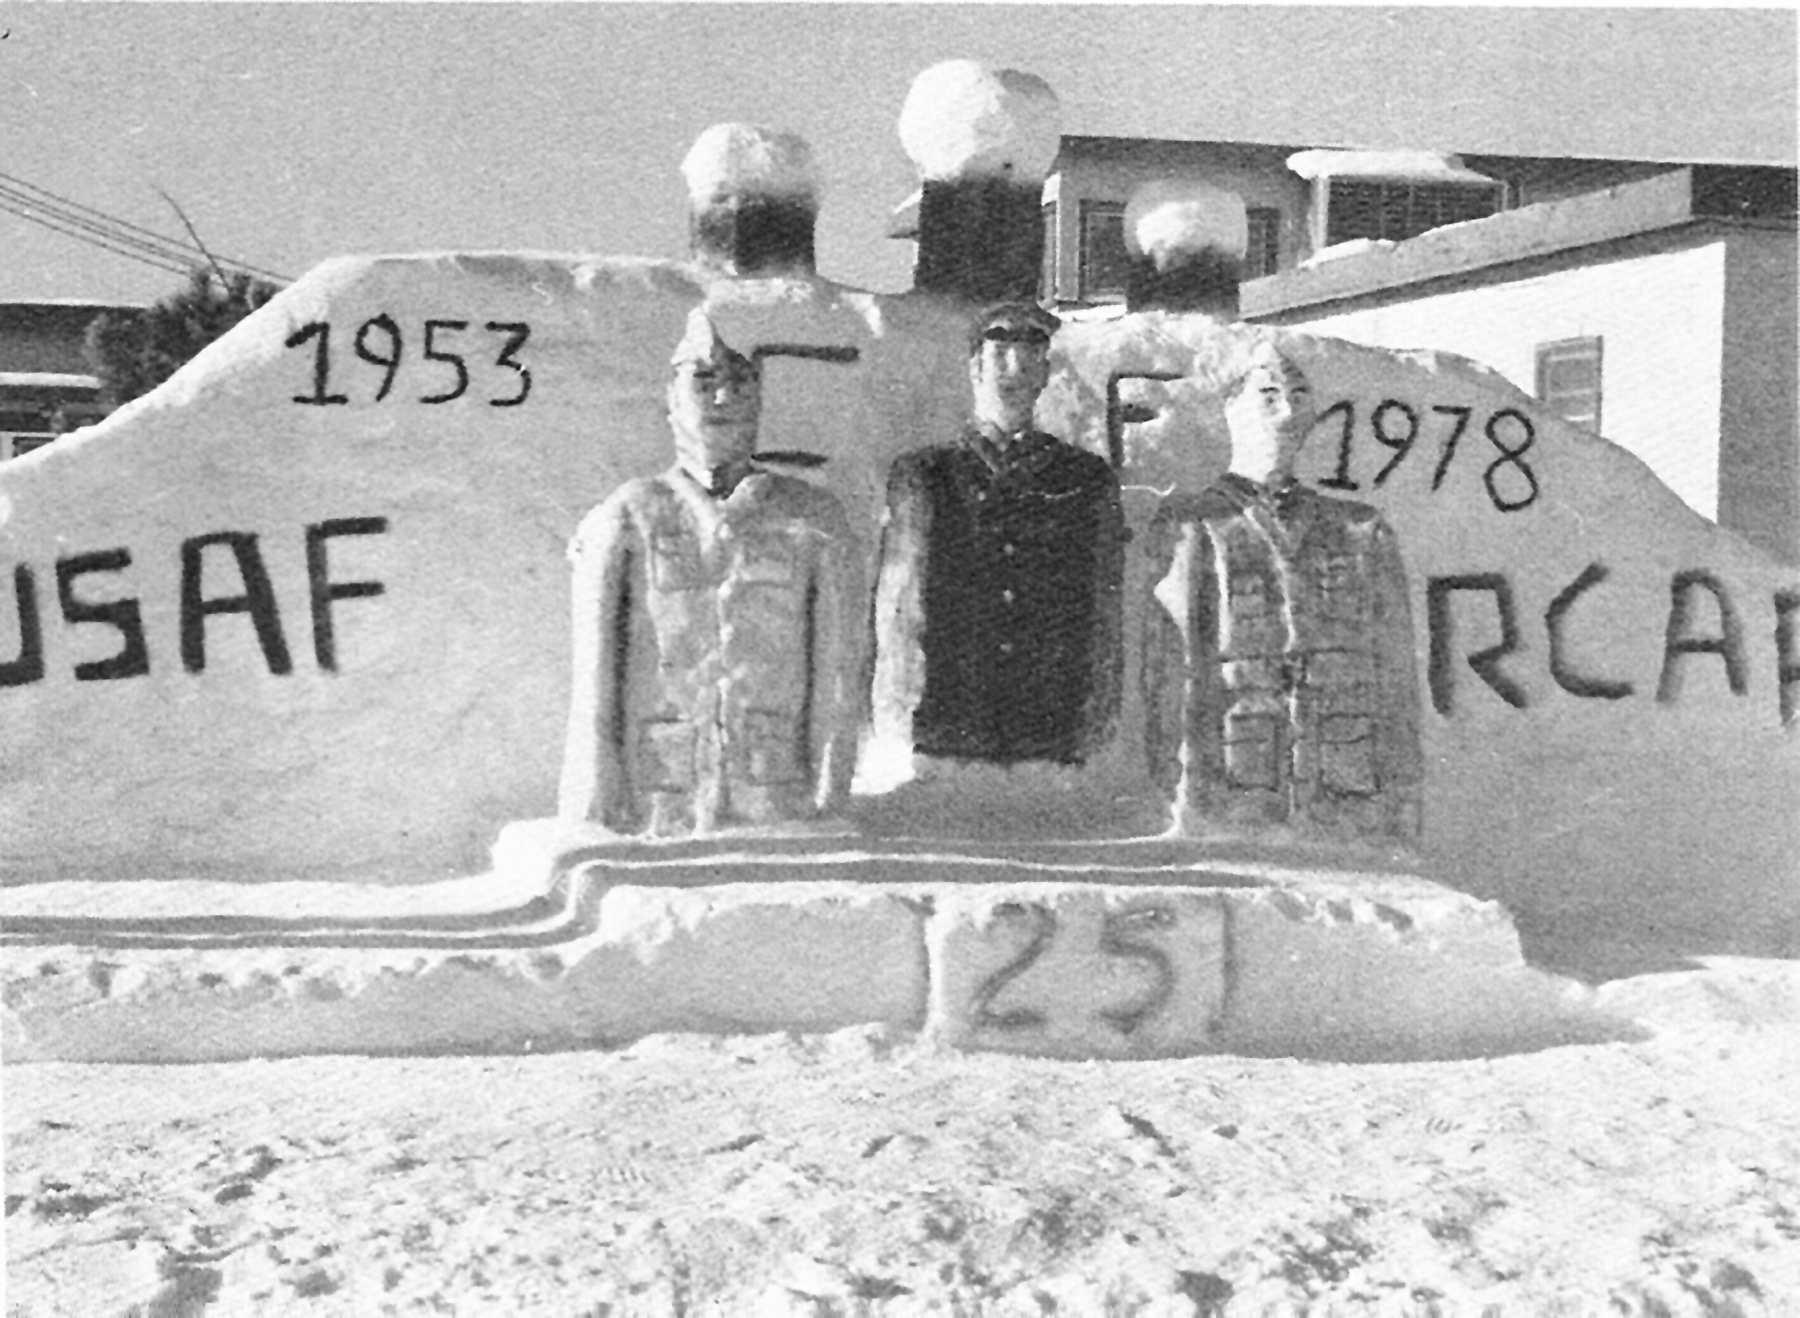 Winter carnivals were a way to break the monotony of winter at the often-remote radar stations. This elaborate snow sculpture at RCAF Station Sioux Lookout, Ontario, celebrates the 25th anniversary of the station, portraying three uniformed personnel against a background topped by radar domes. PHOTO: Canadian Forces Museum of Aerospace Defence collection